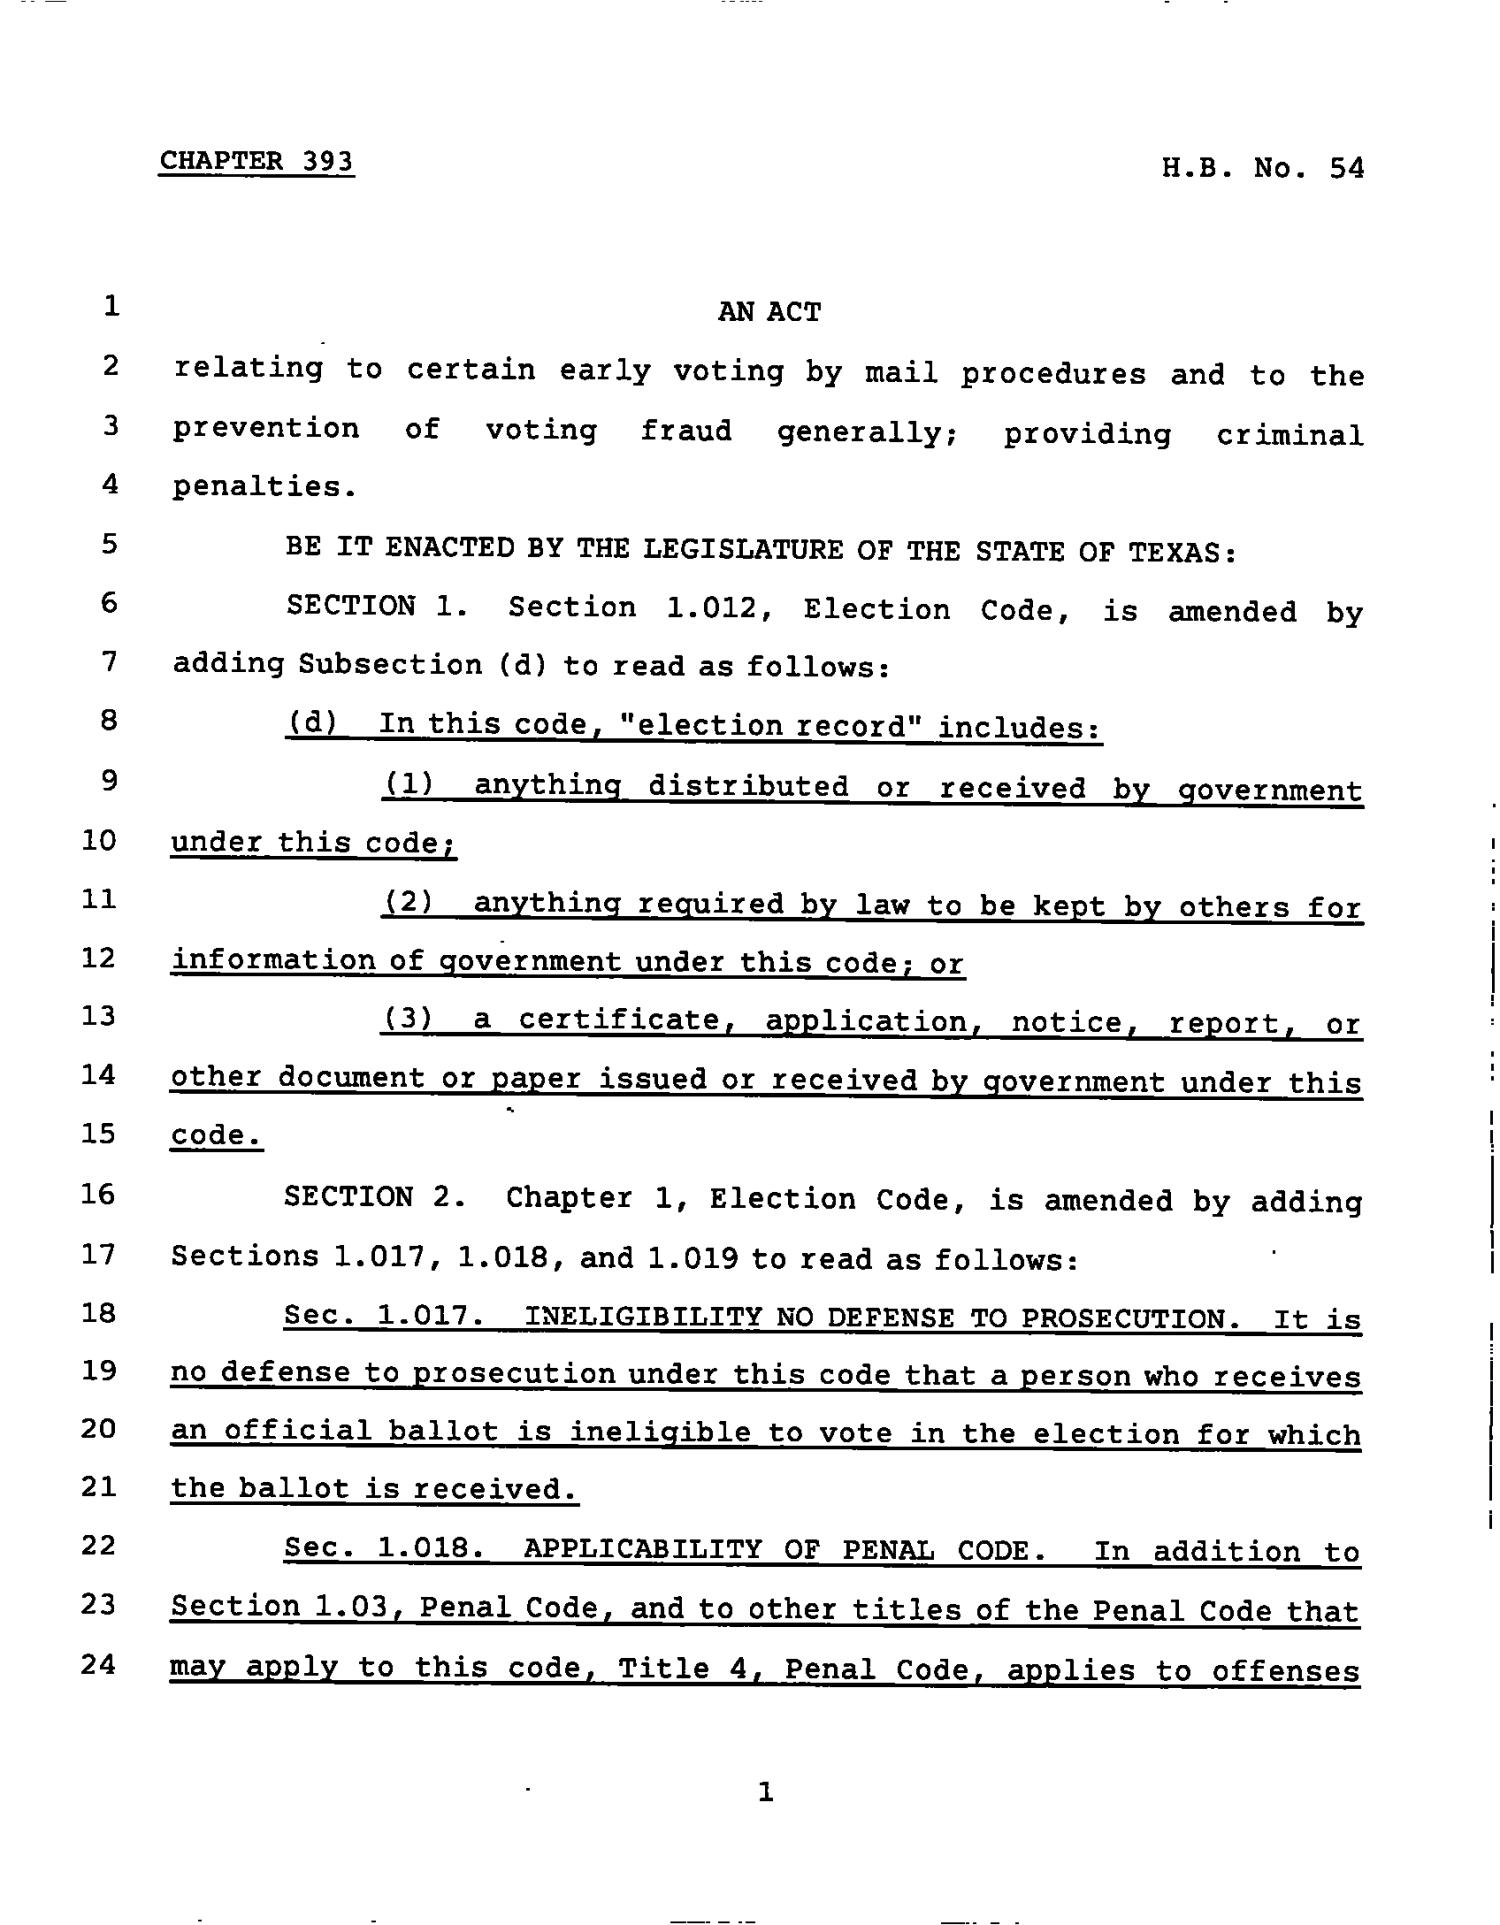 78th Texas Legislature, Regular Session, House Bill 54, Chapter 393                                                                                                      [Sequence #]: 1 of 19